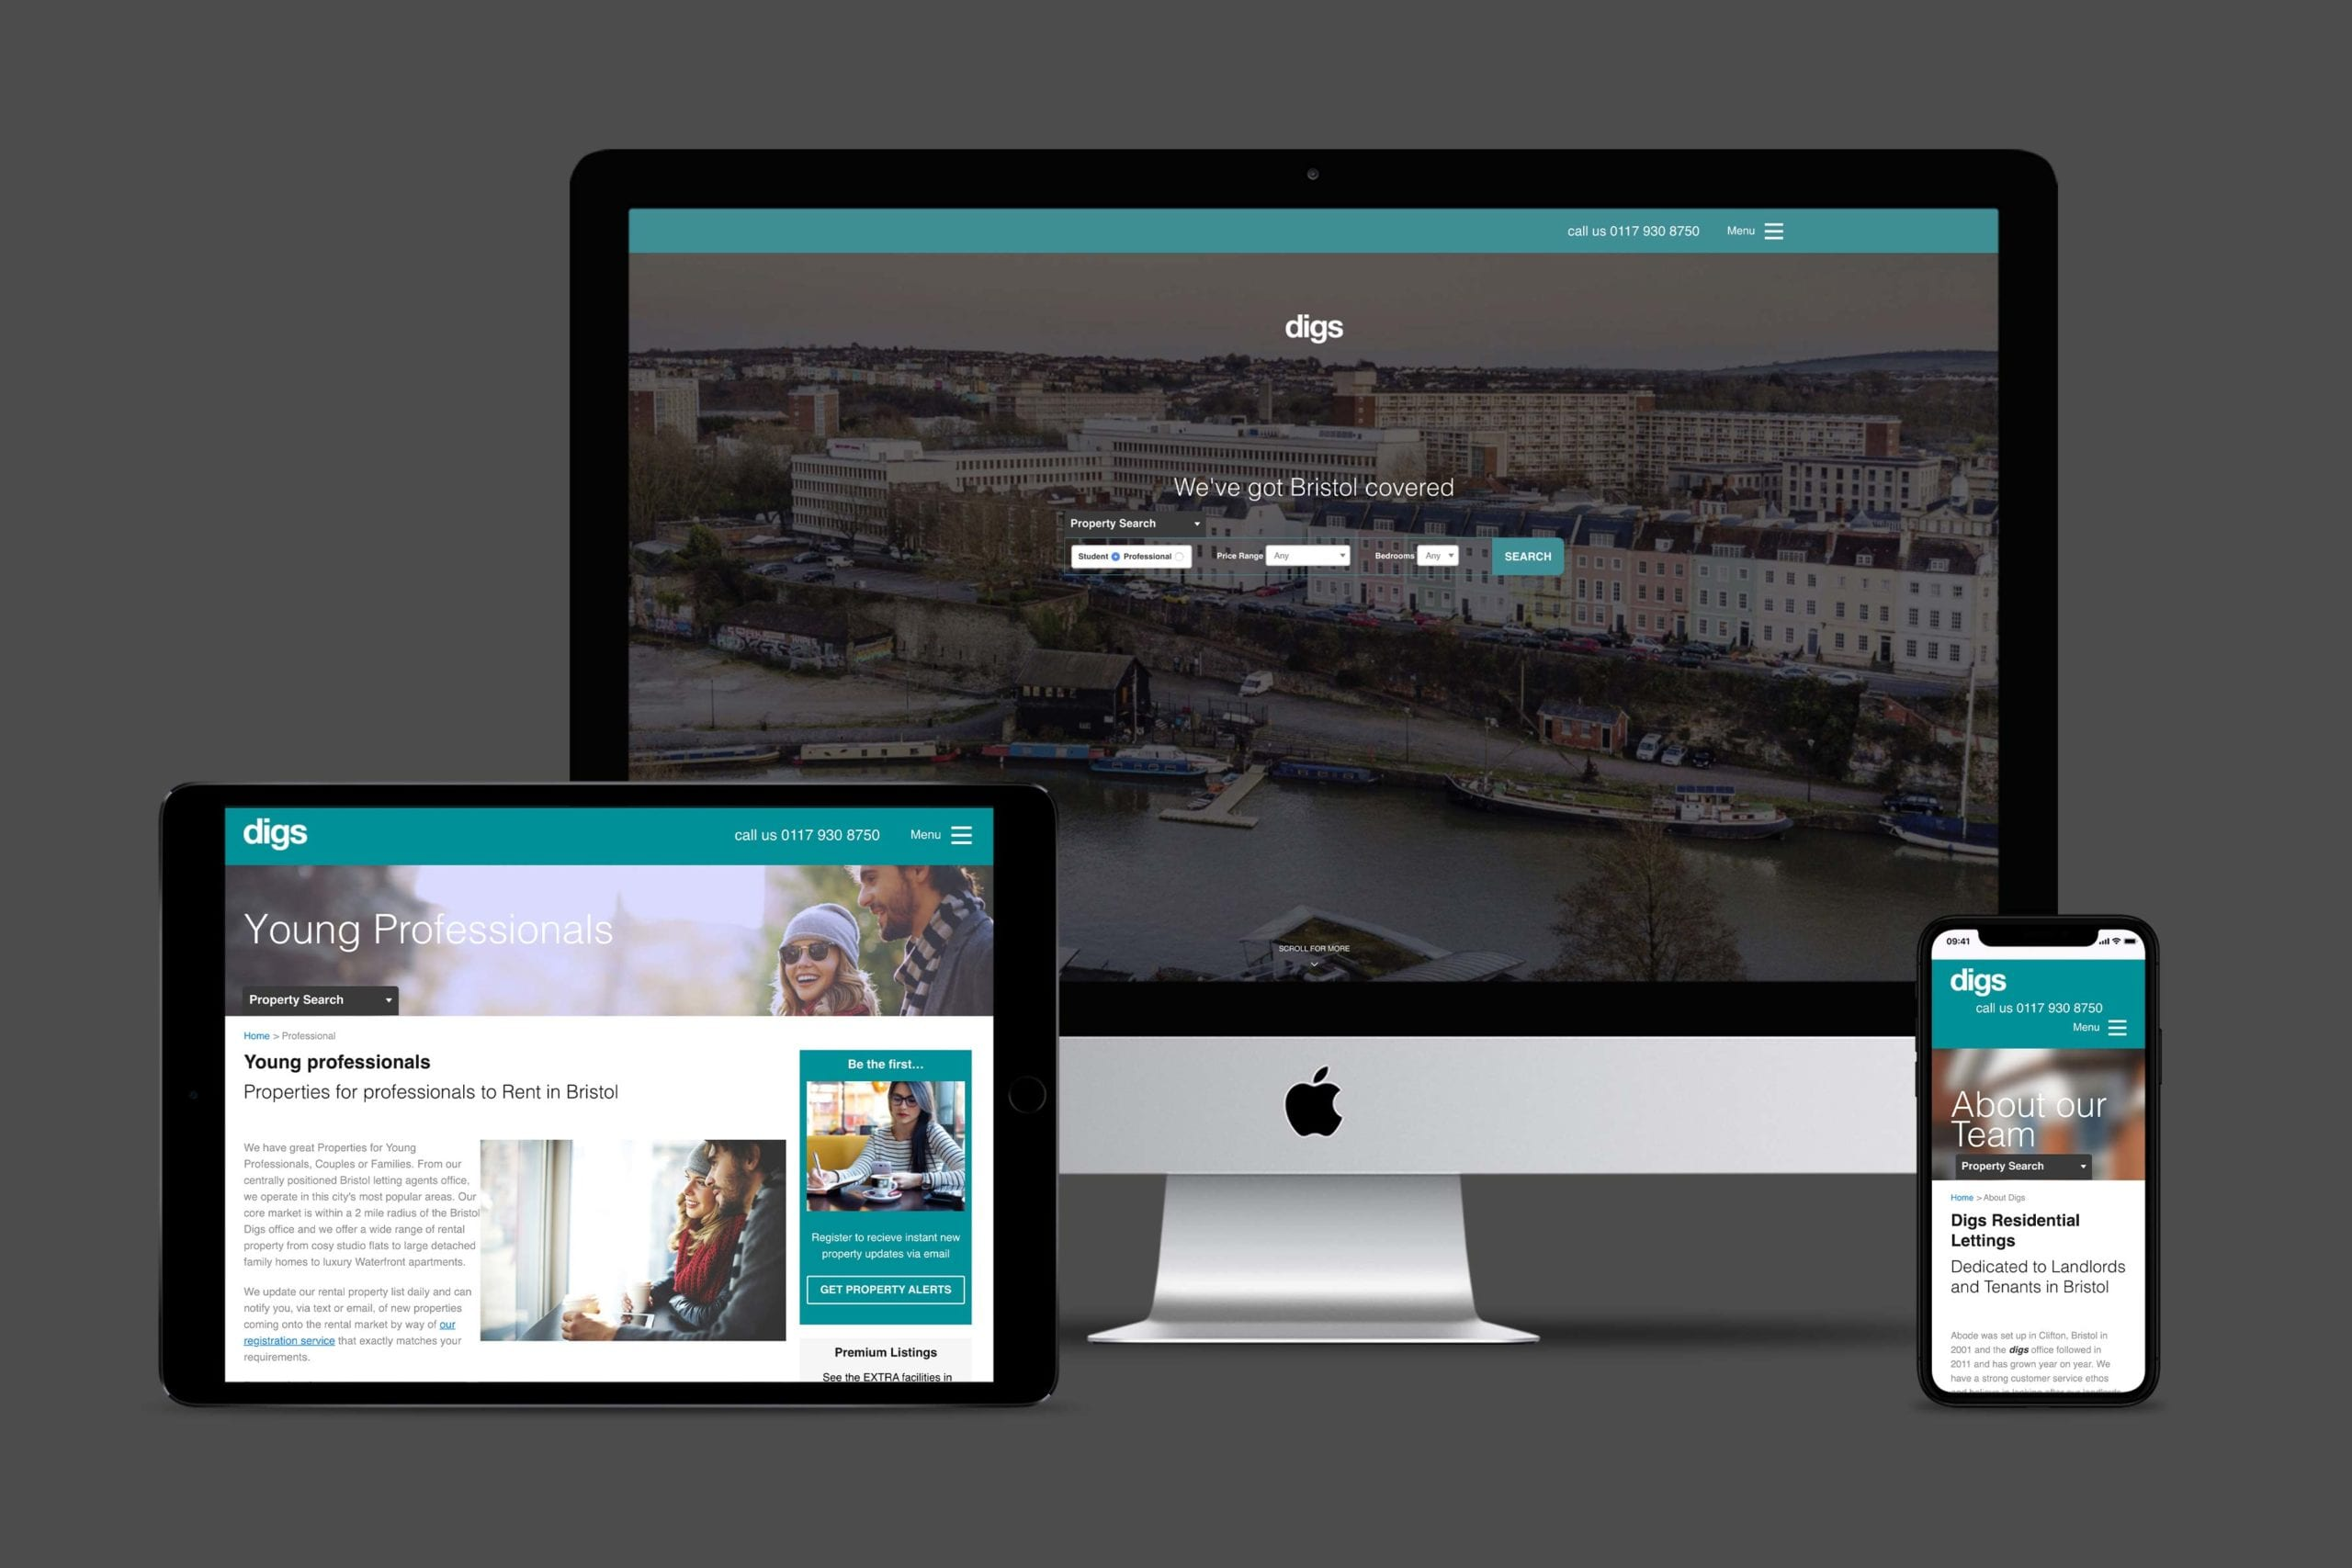 Digs website displayed across multiple devices